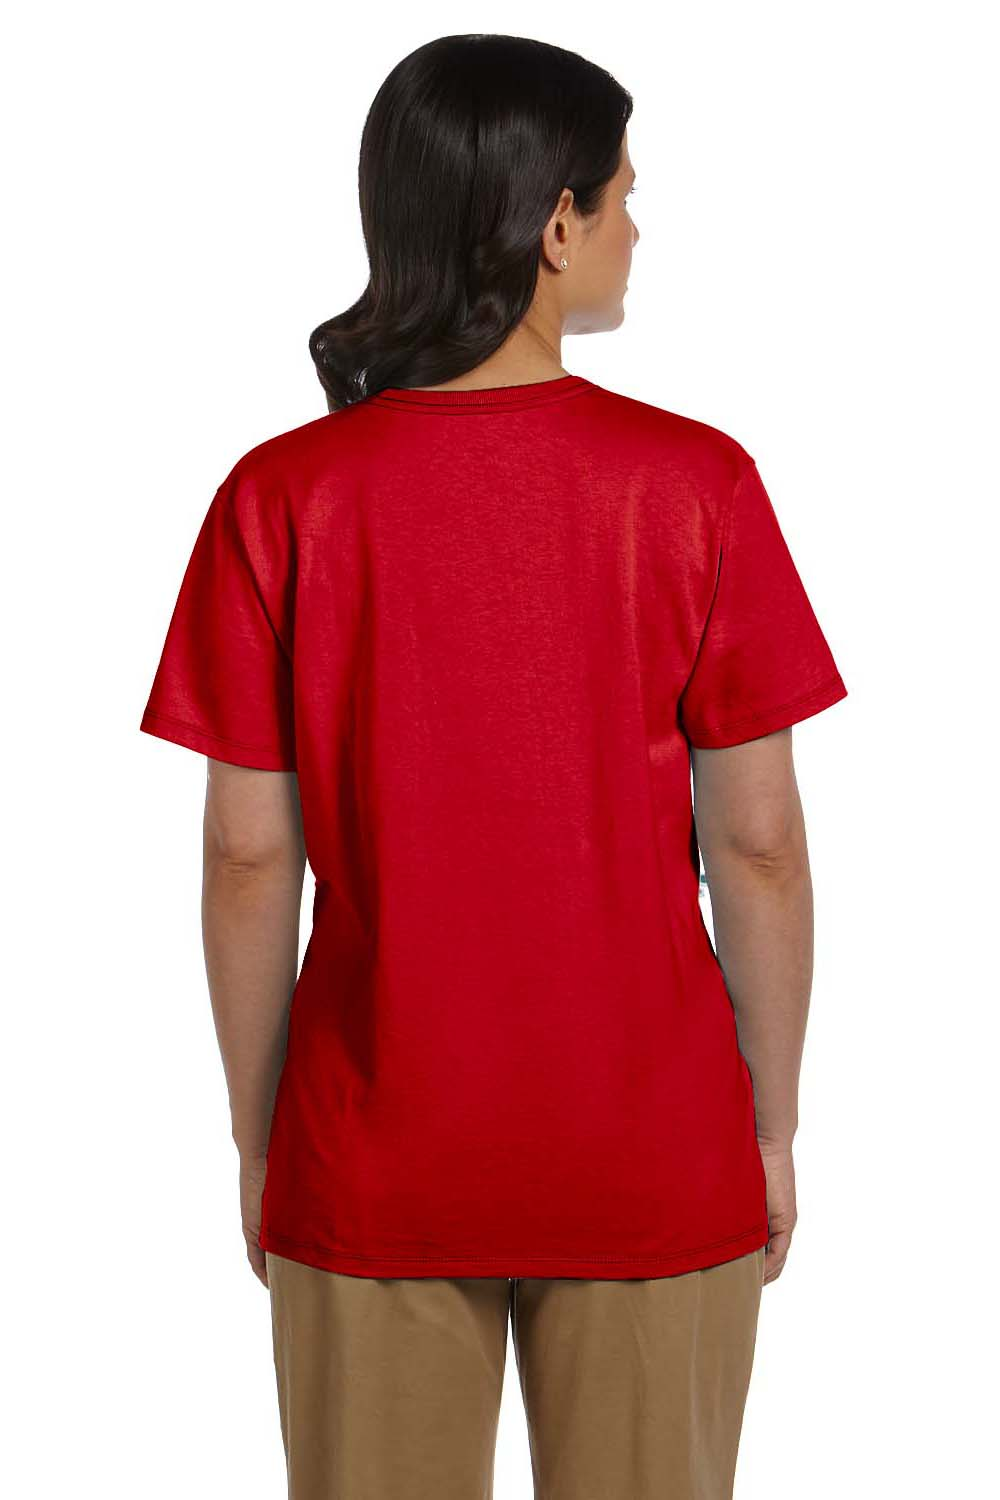 Hanes 5780 Womens ComfortSoft Short Sleeve V-Neck T-Shirt Red Back